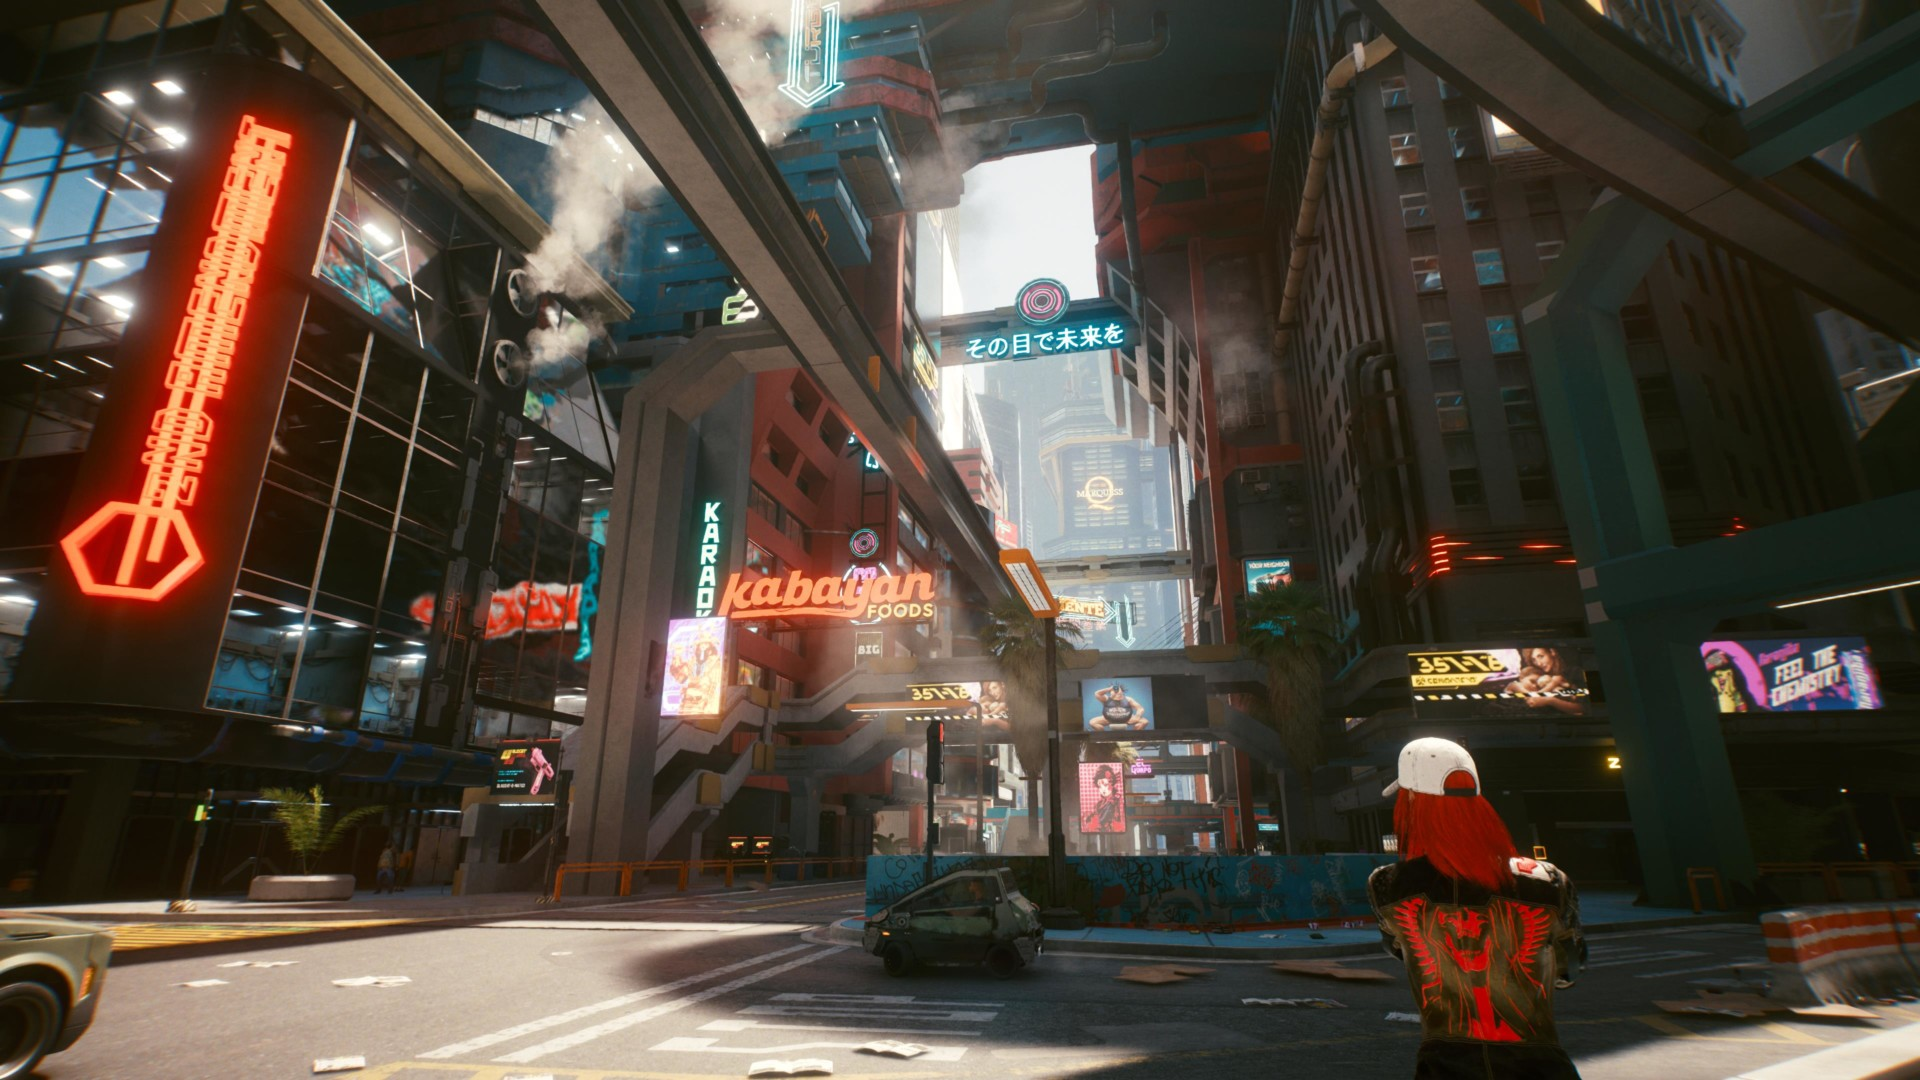 Cyberpunk 2077: Increasing FPS and removing blur effects